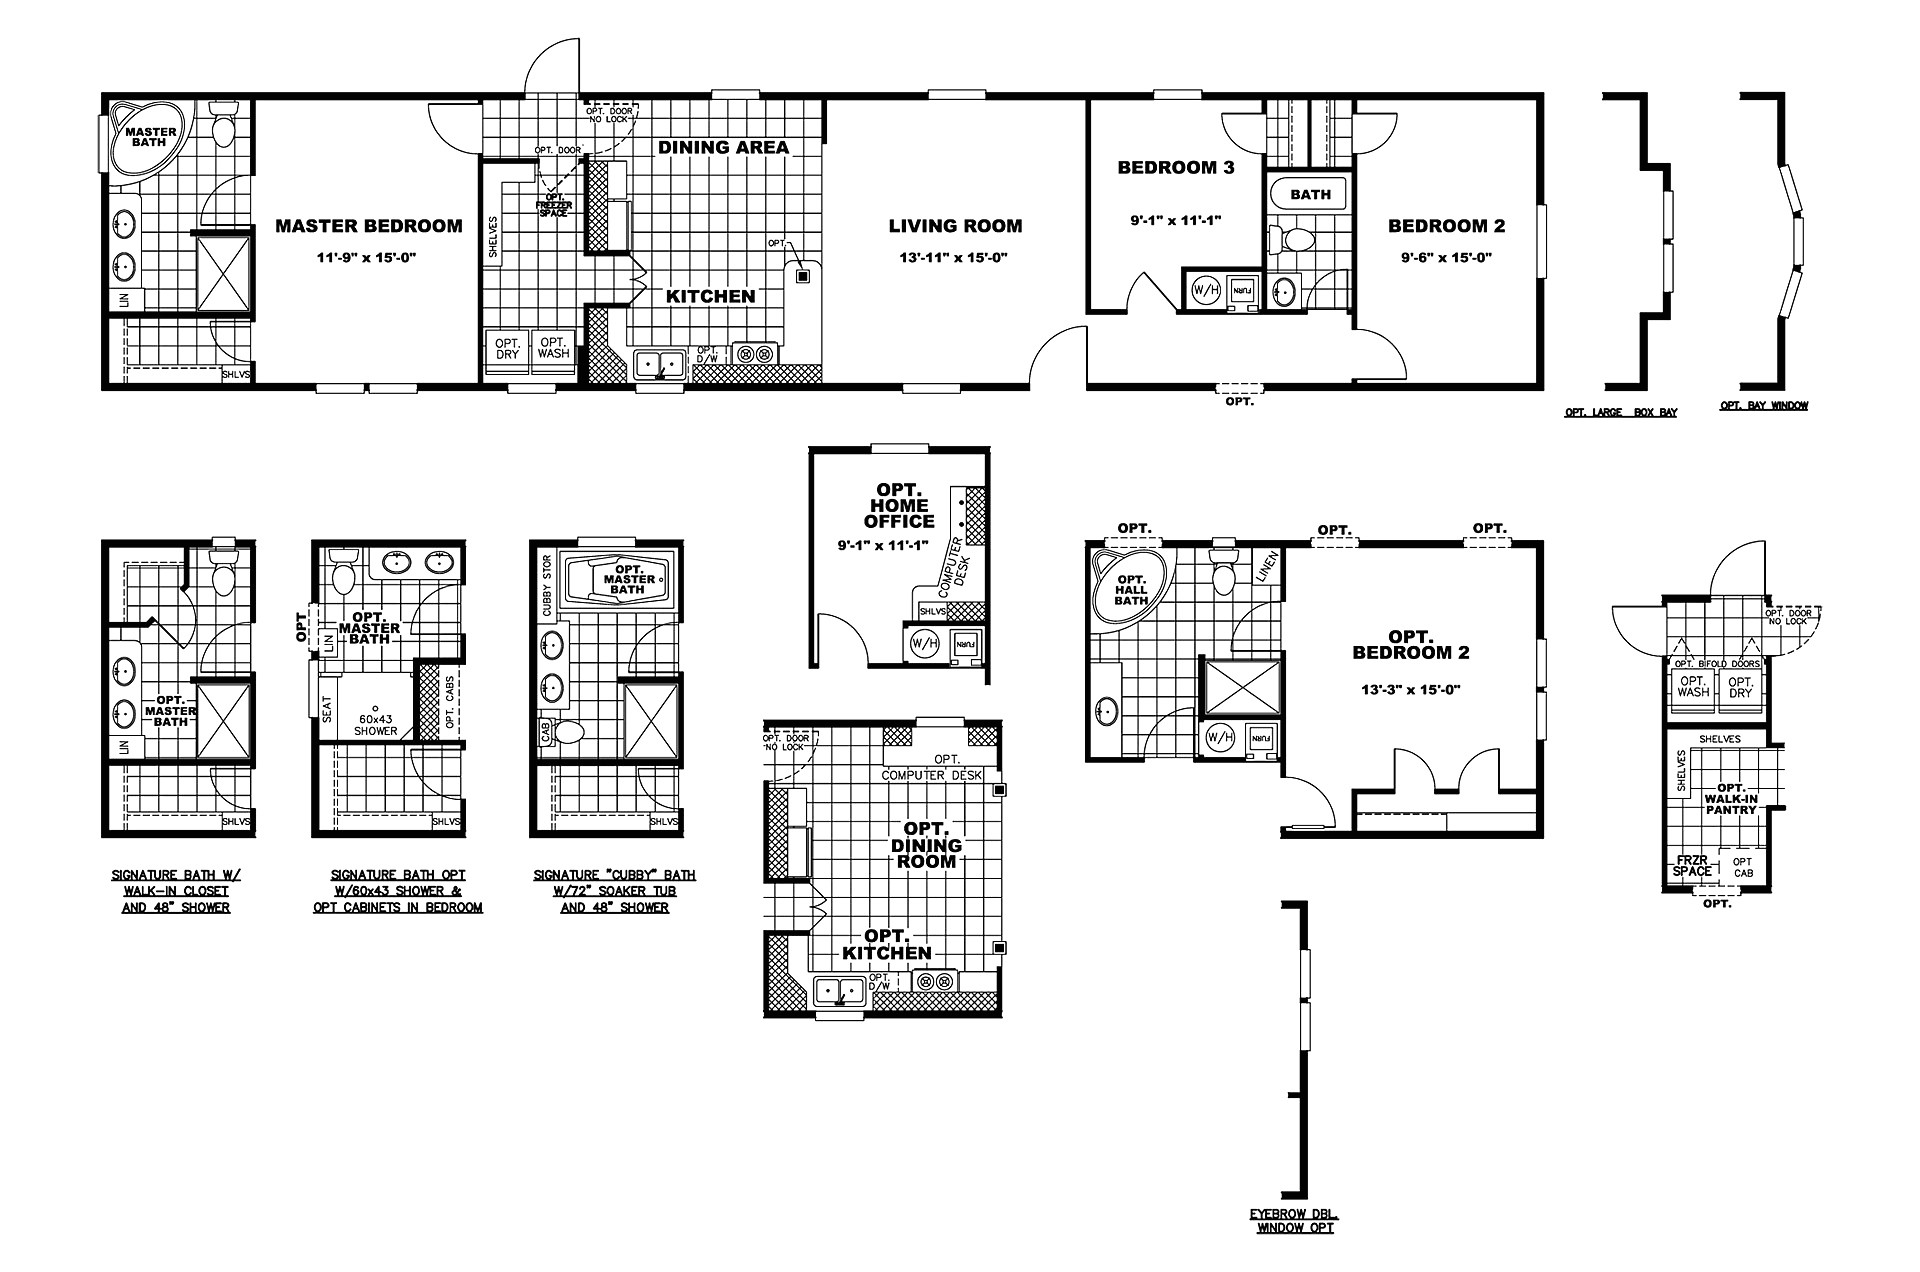 bass homes floor plans awesome cottage house plans two bedroom plan modular home floor repair e